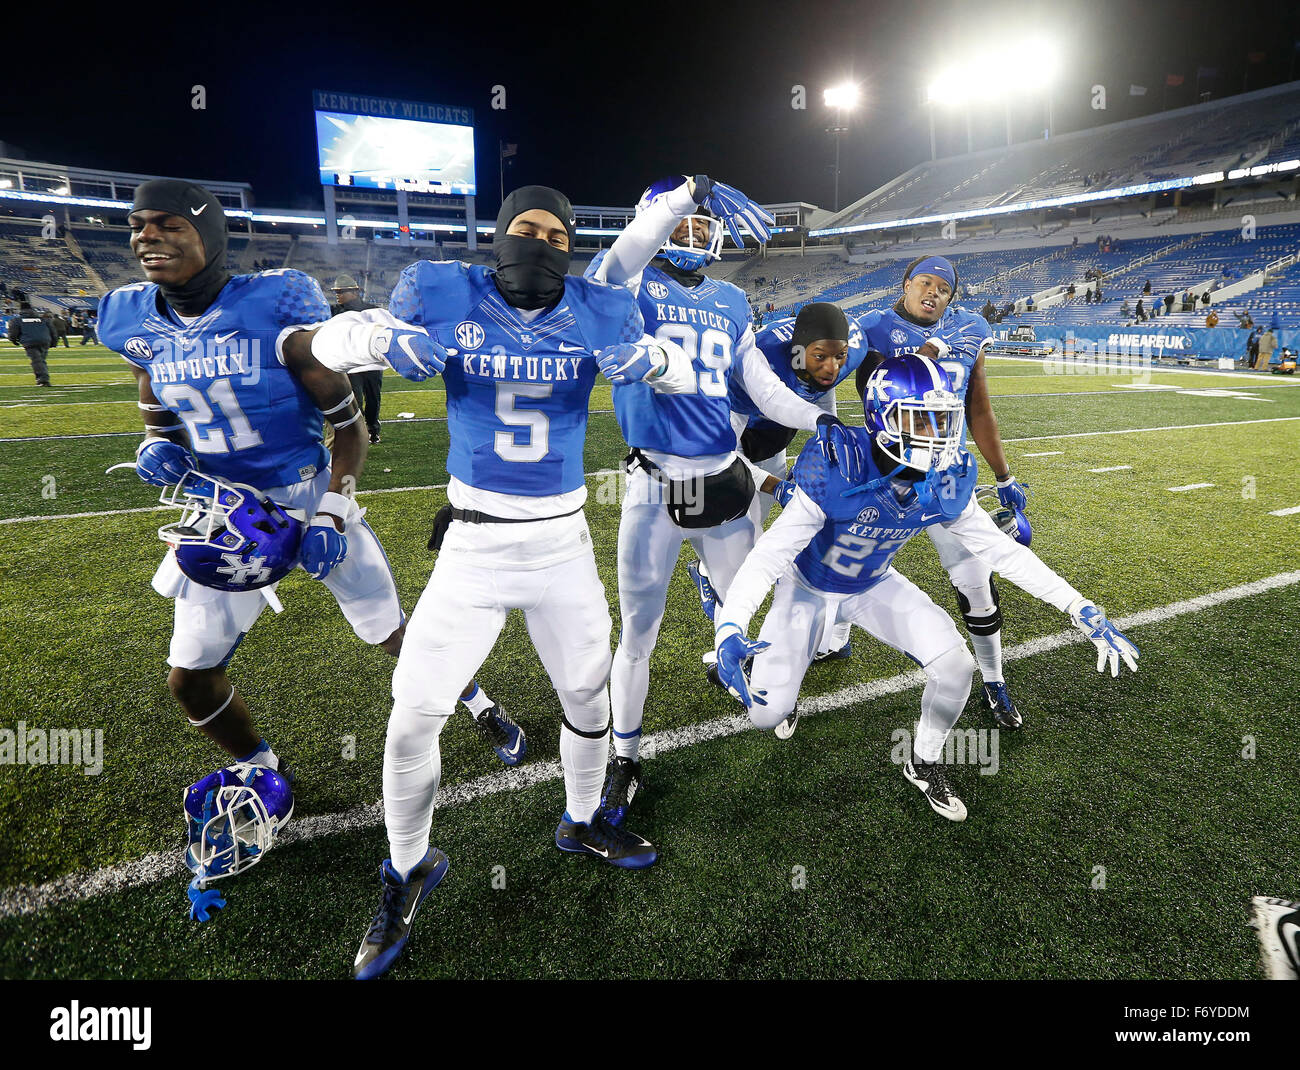 Lexington, KY, USA. 21st Nov, 2015. Several UK players posed for cameras after the University of Kentucky Wildcats - Stock Image